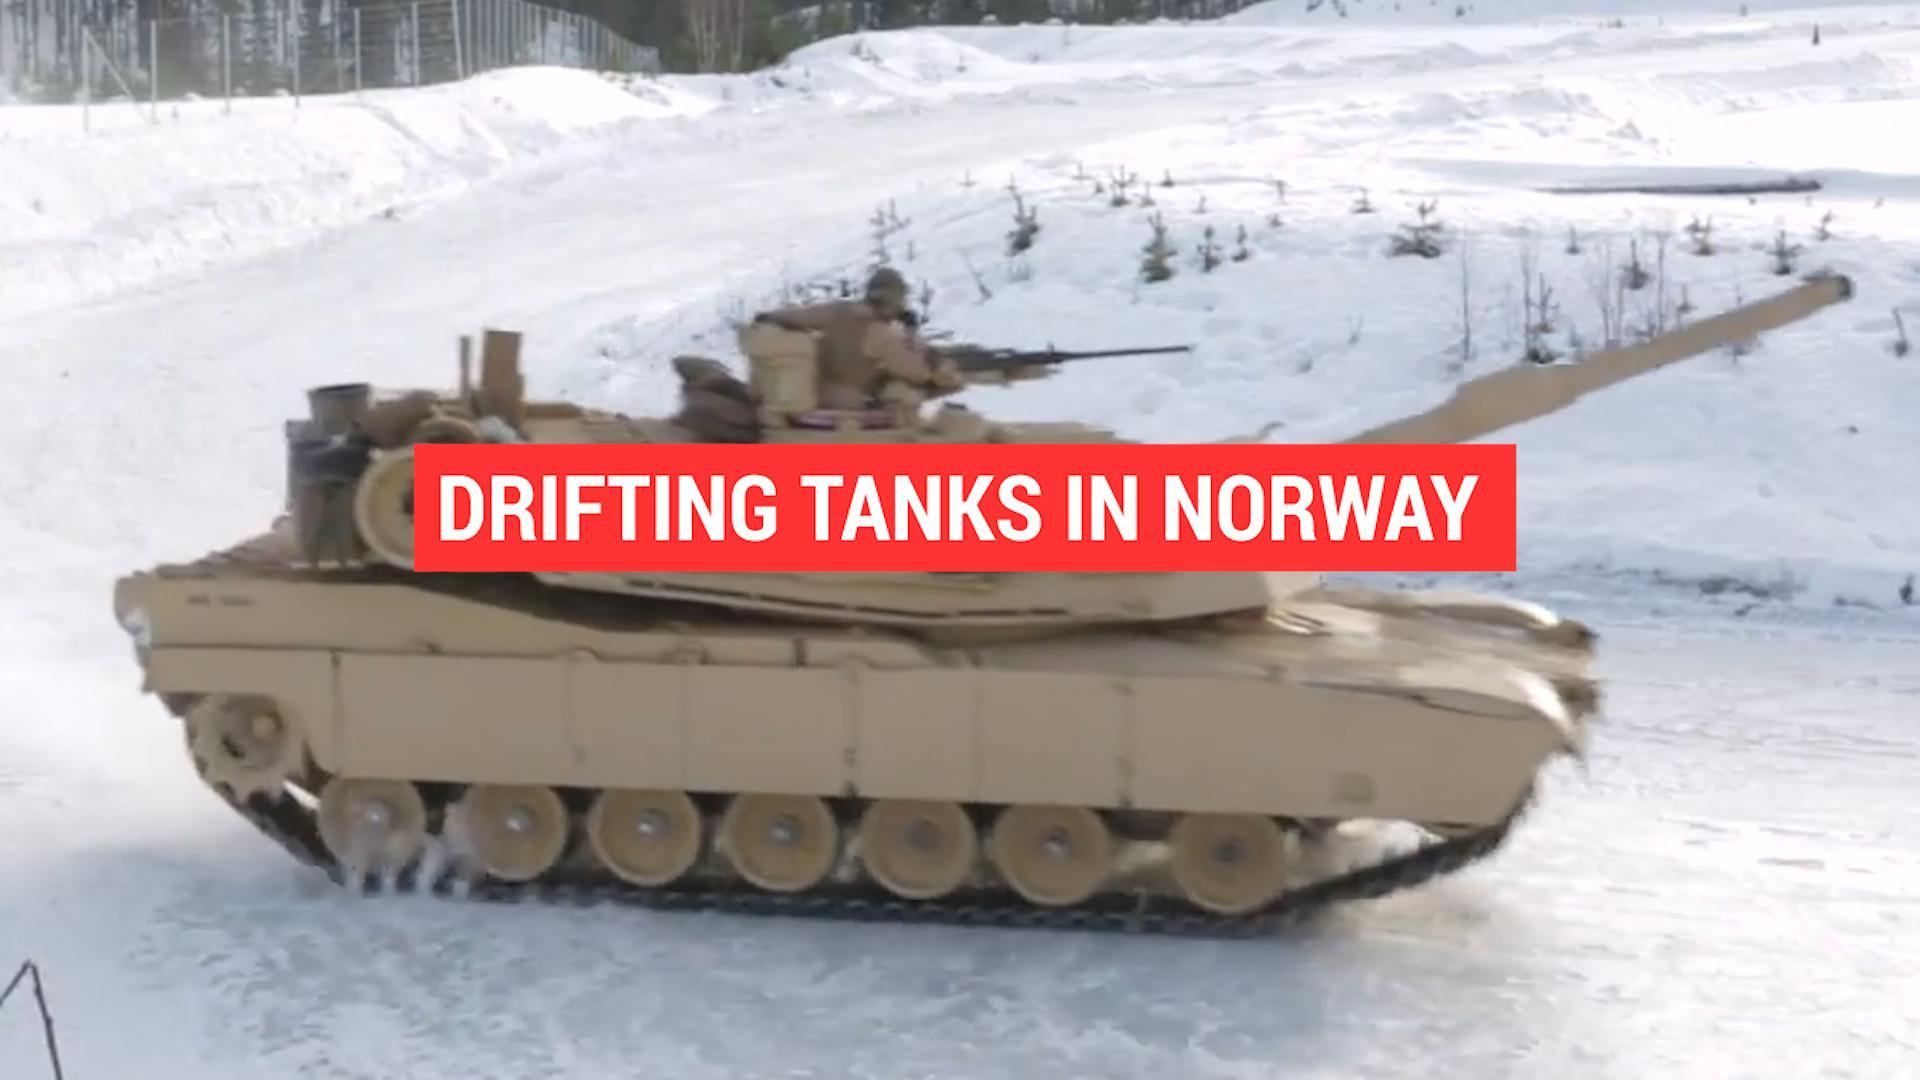 Drifting tanks on ice is a form of training (probably)